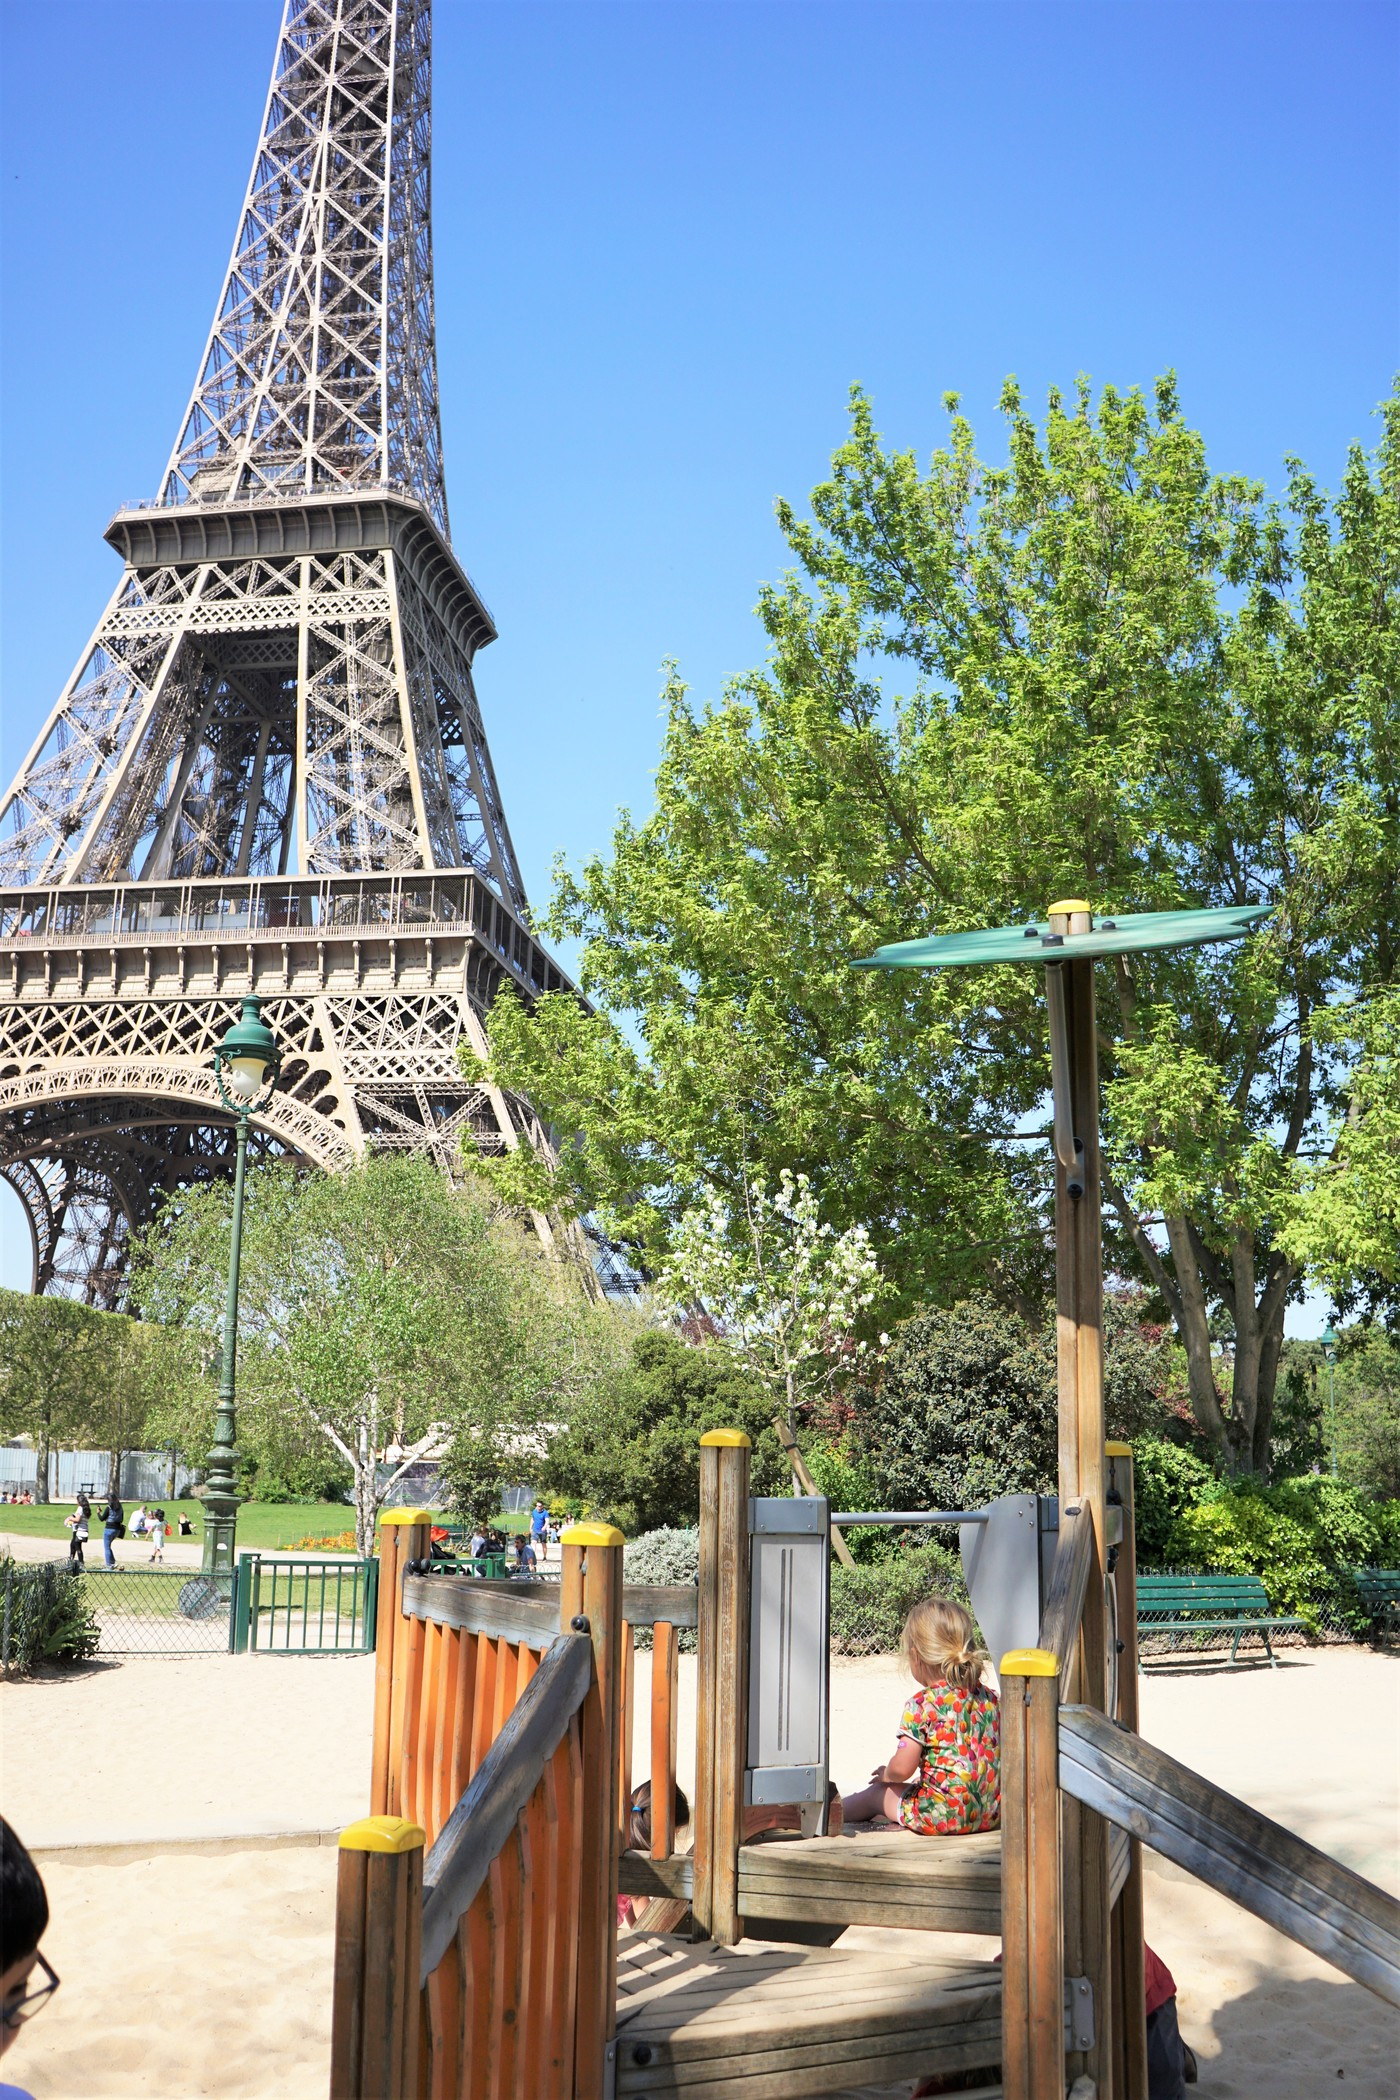 One of the playgrounds at the base of the Eiffel Tower